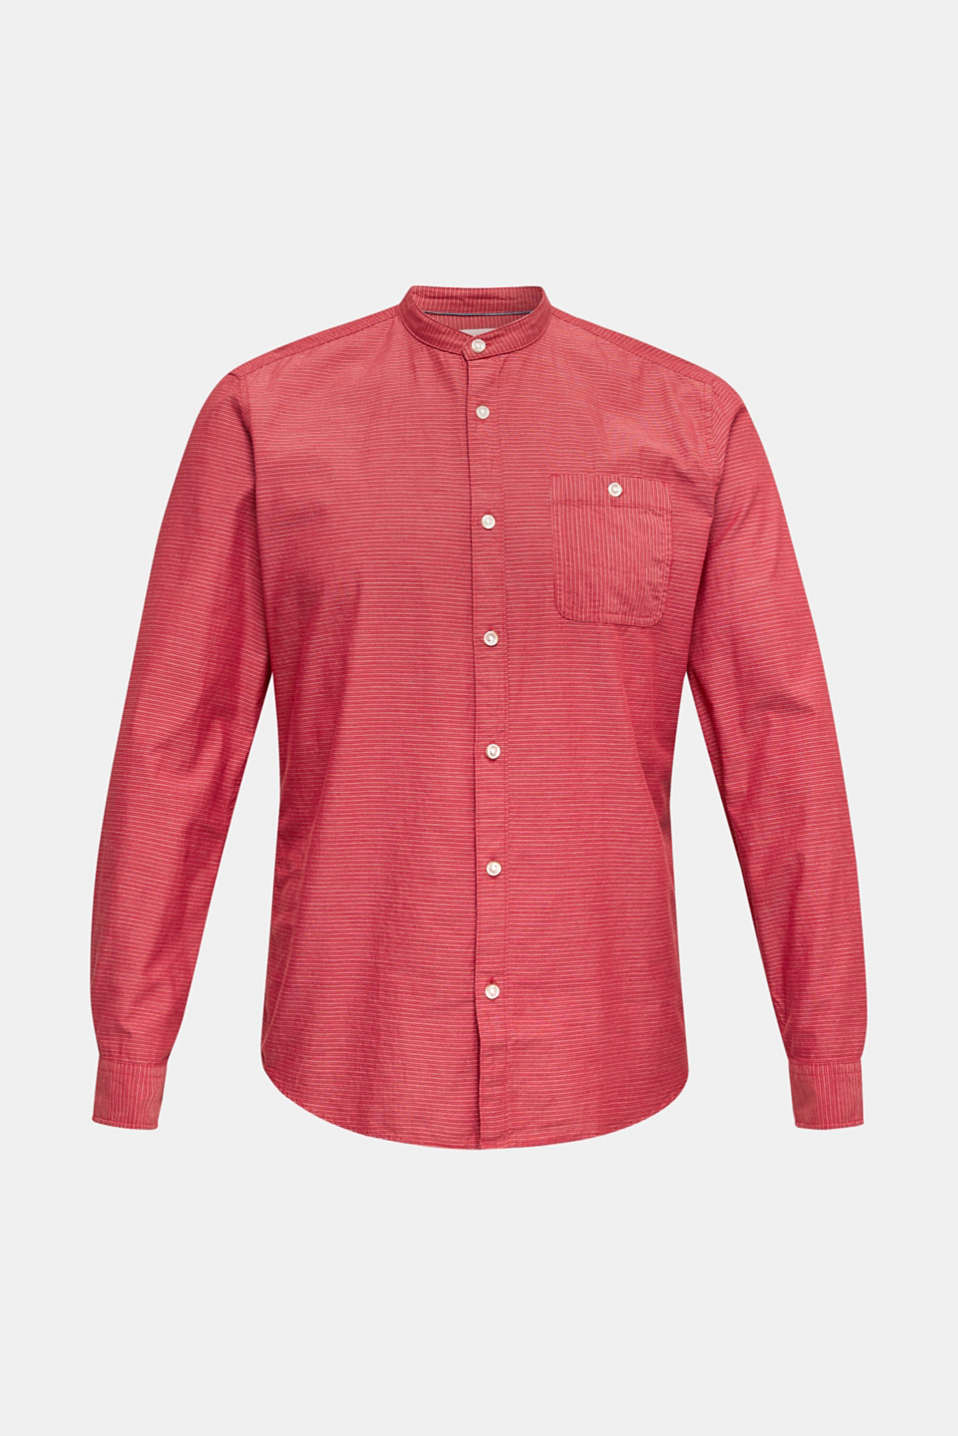 Shirt with band collar, 100% cotton, RED 3, detail image number 6